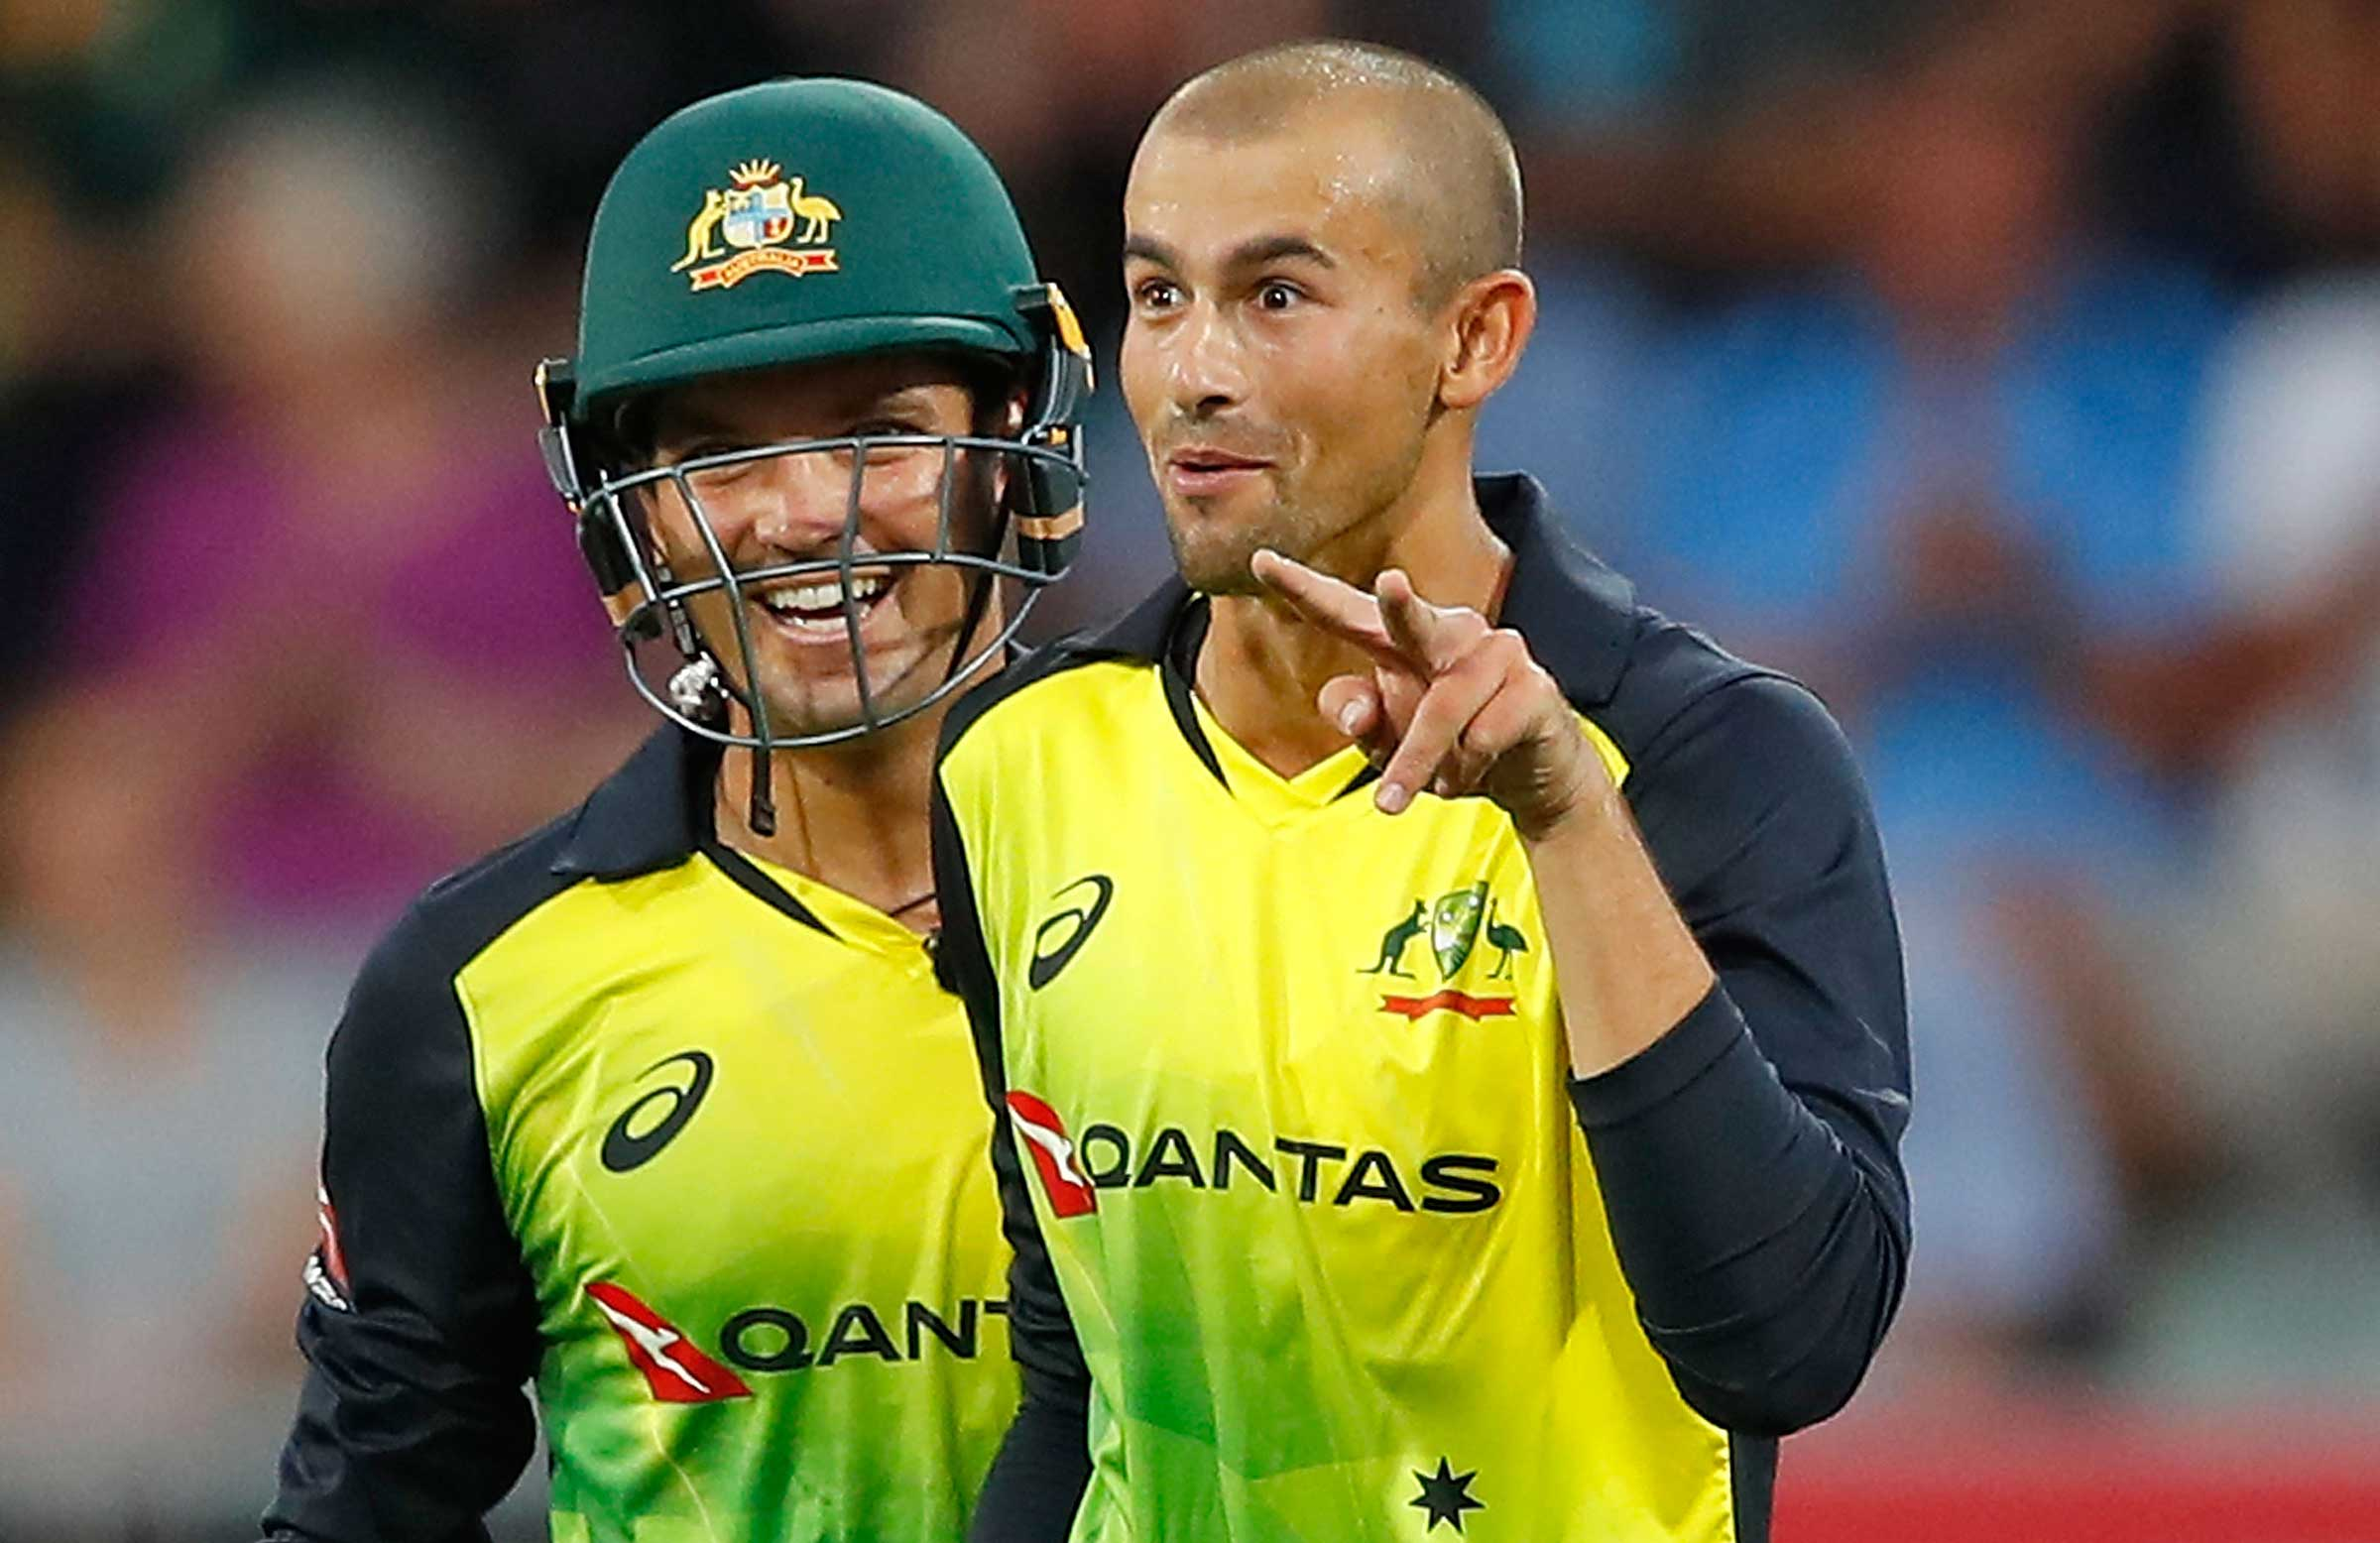 Agar reacts after catching Hales out // Getty